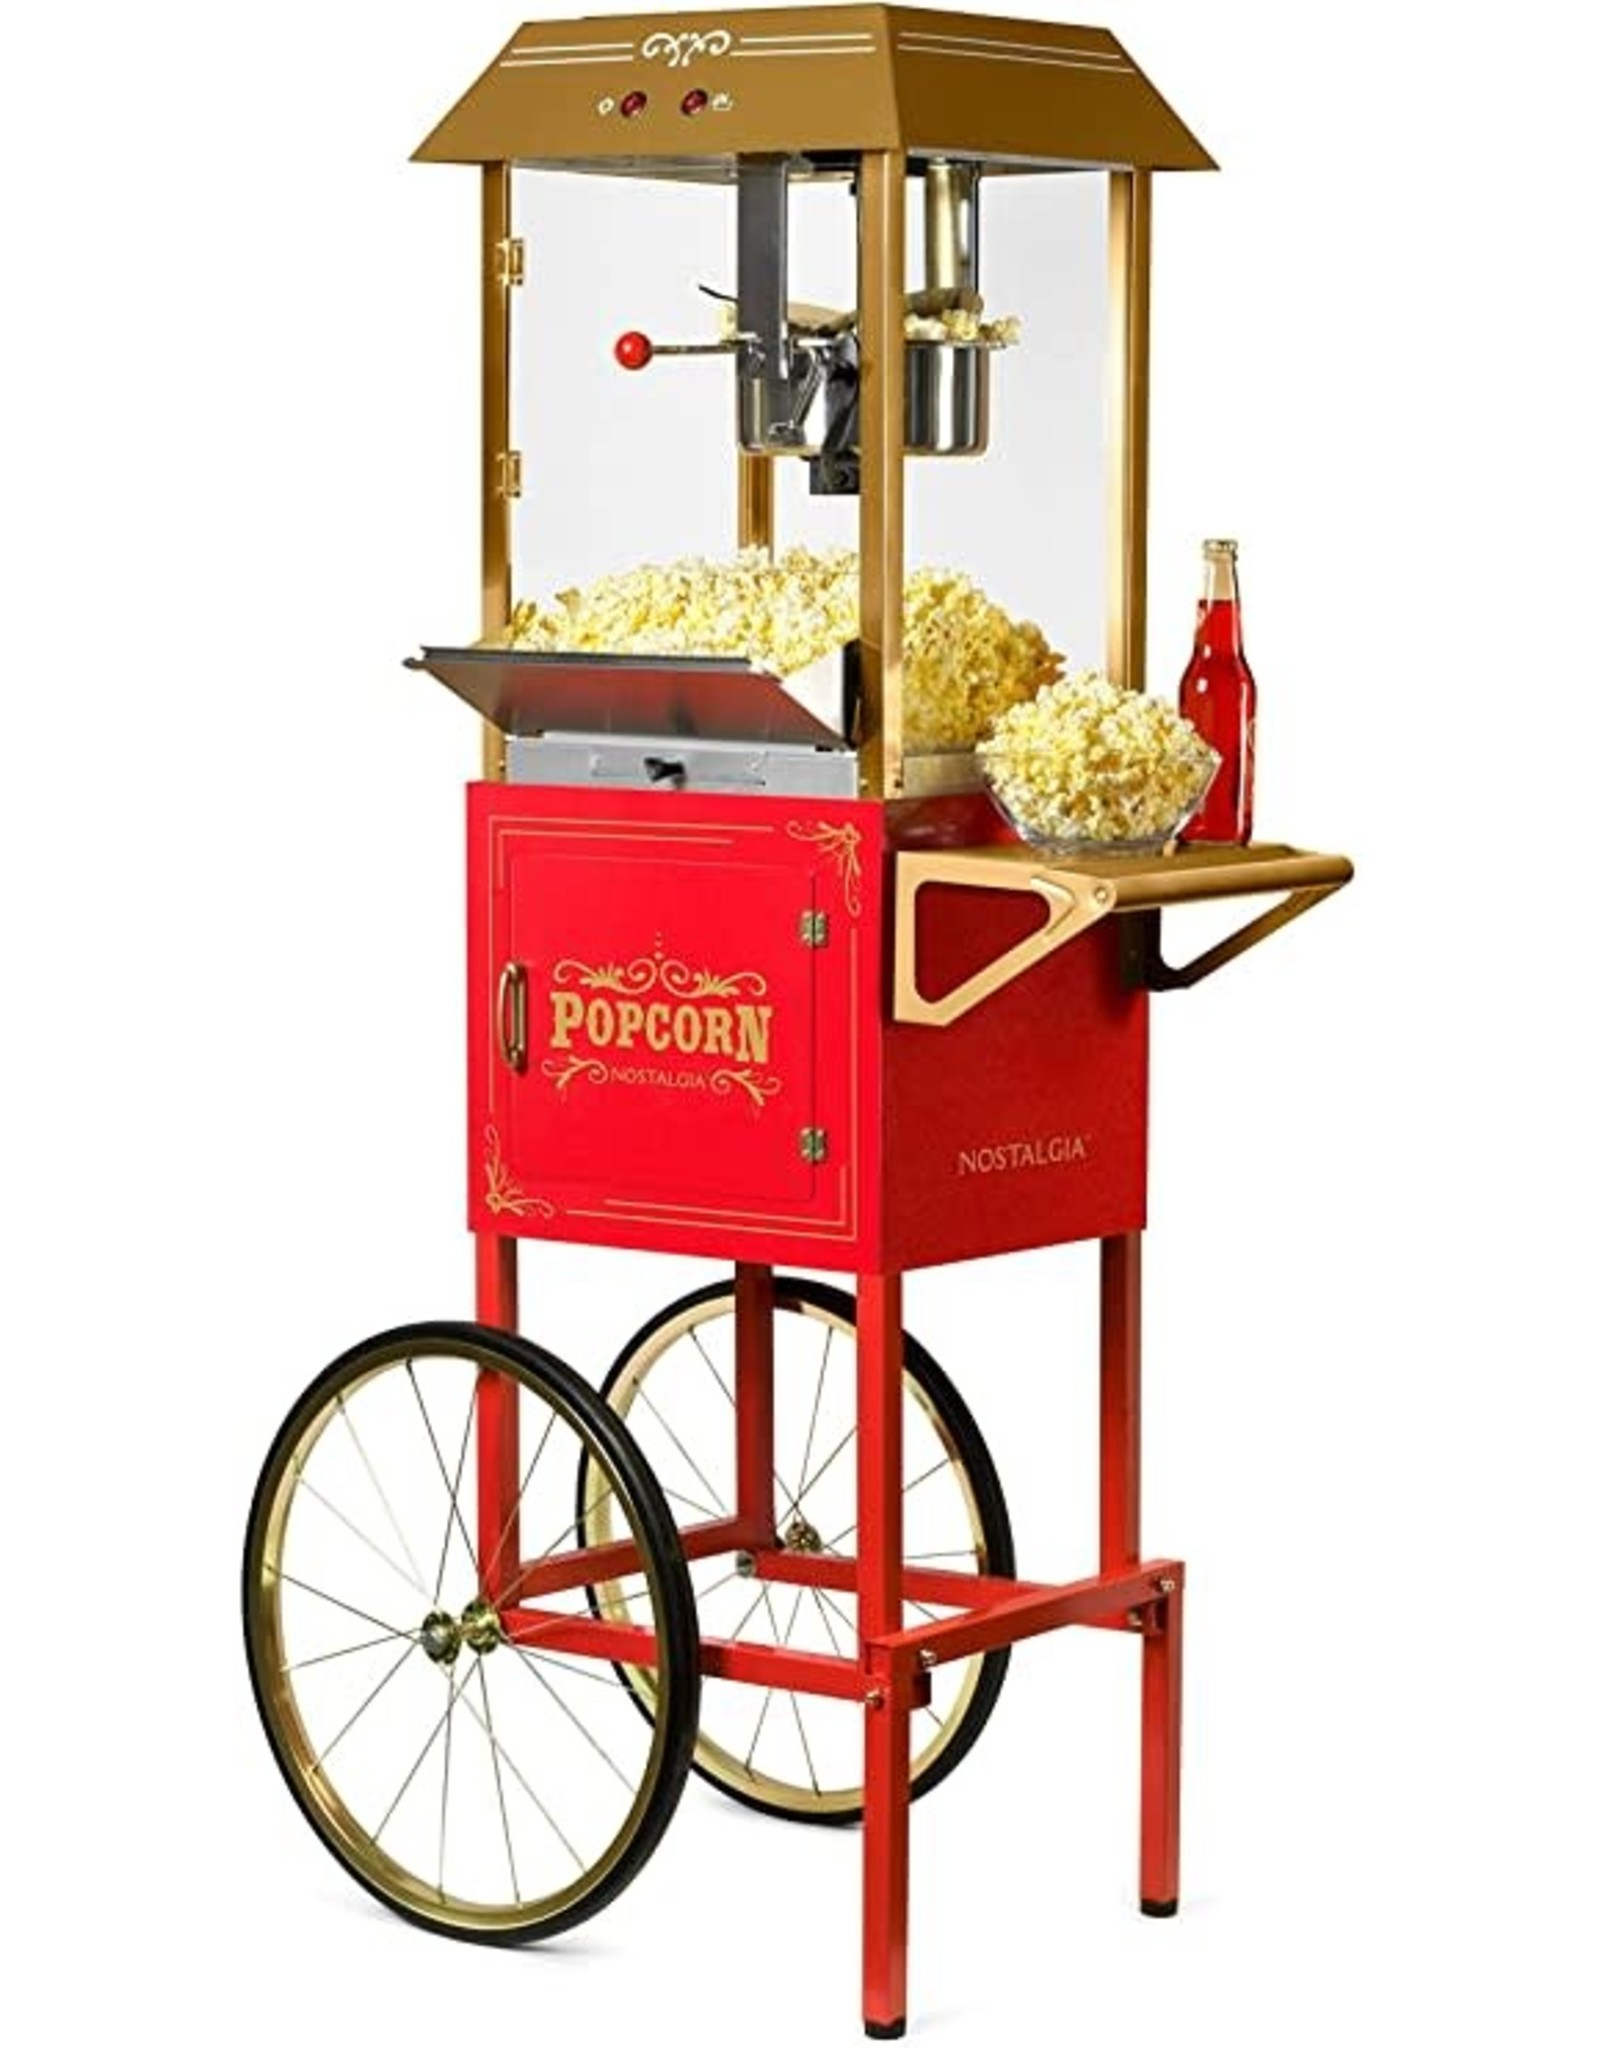 """Nostalgia CCP1000RED Nostalgia Vintage 10-Ounce Professional Popcorn and Concession Cart   59"""" Tall, Makes 40 Cups of Popcorn, Kernel Measuring Cup, Oil Measuring Spoon & Scoop   Red"""